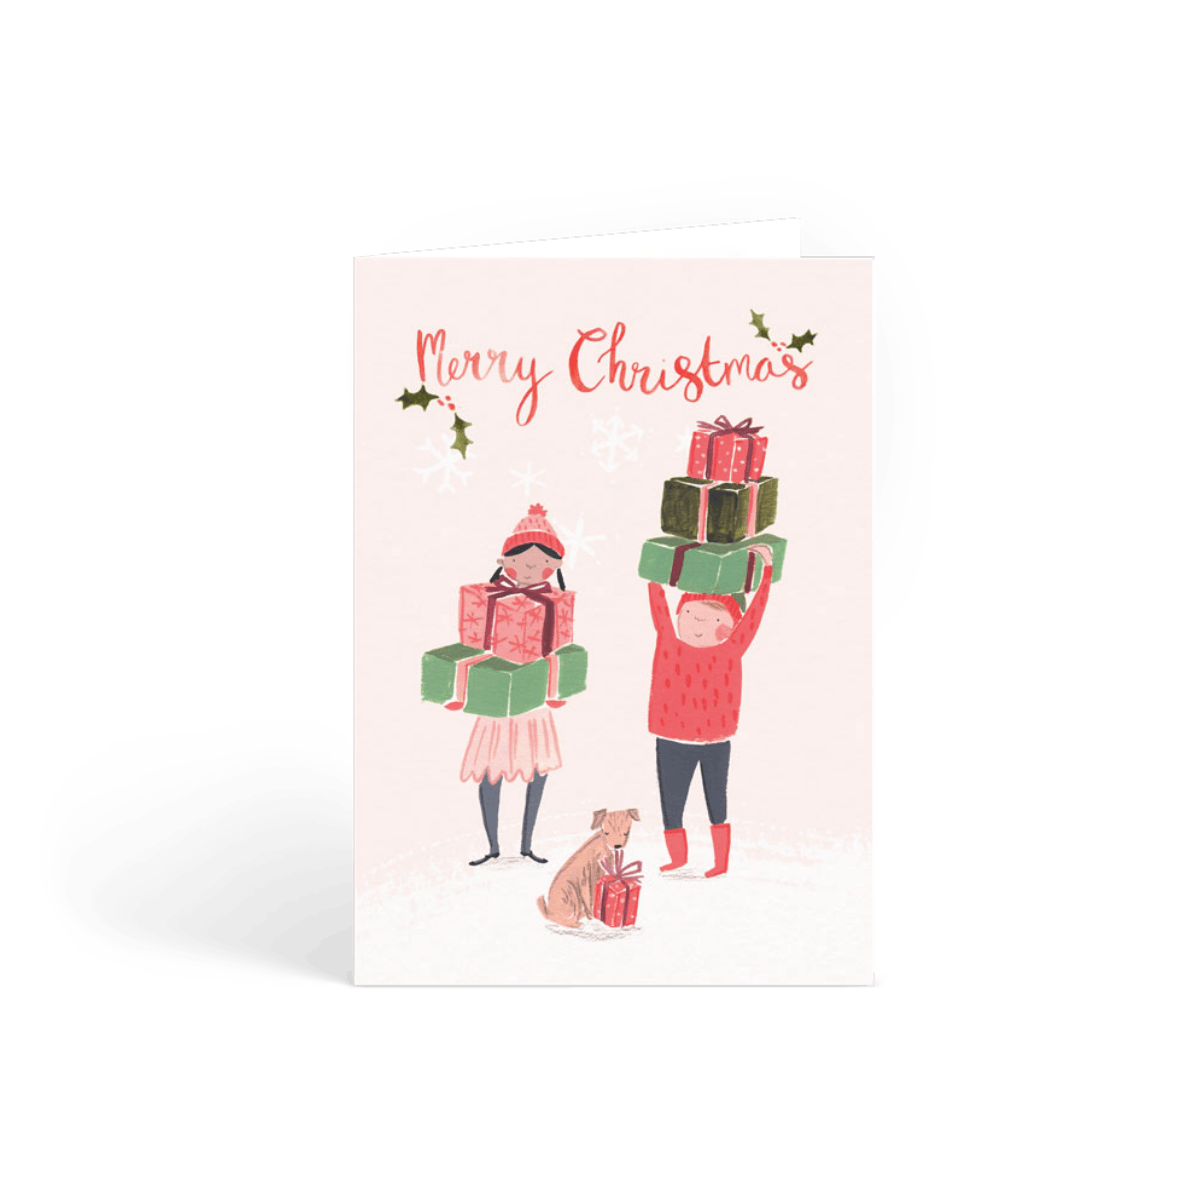 Https%3a%2f%2fwww.papier.com%2fproduct image%2f30222%2f2%2fchristmas morning 7622 front 1509025840.png?ixlib=rb 1.1